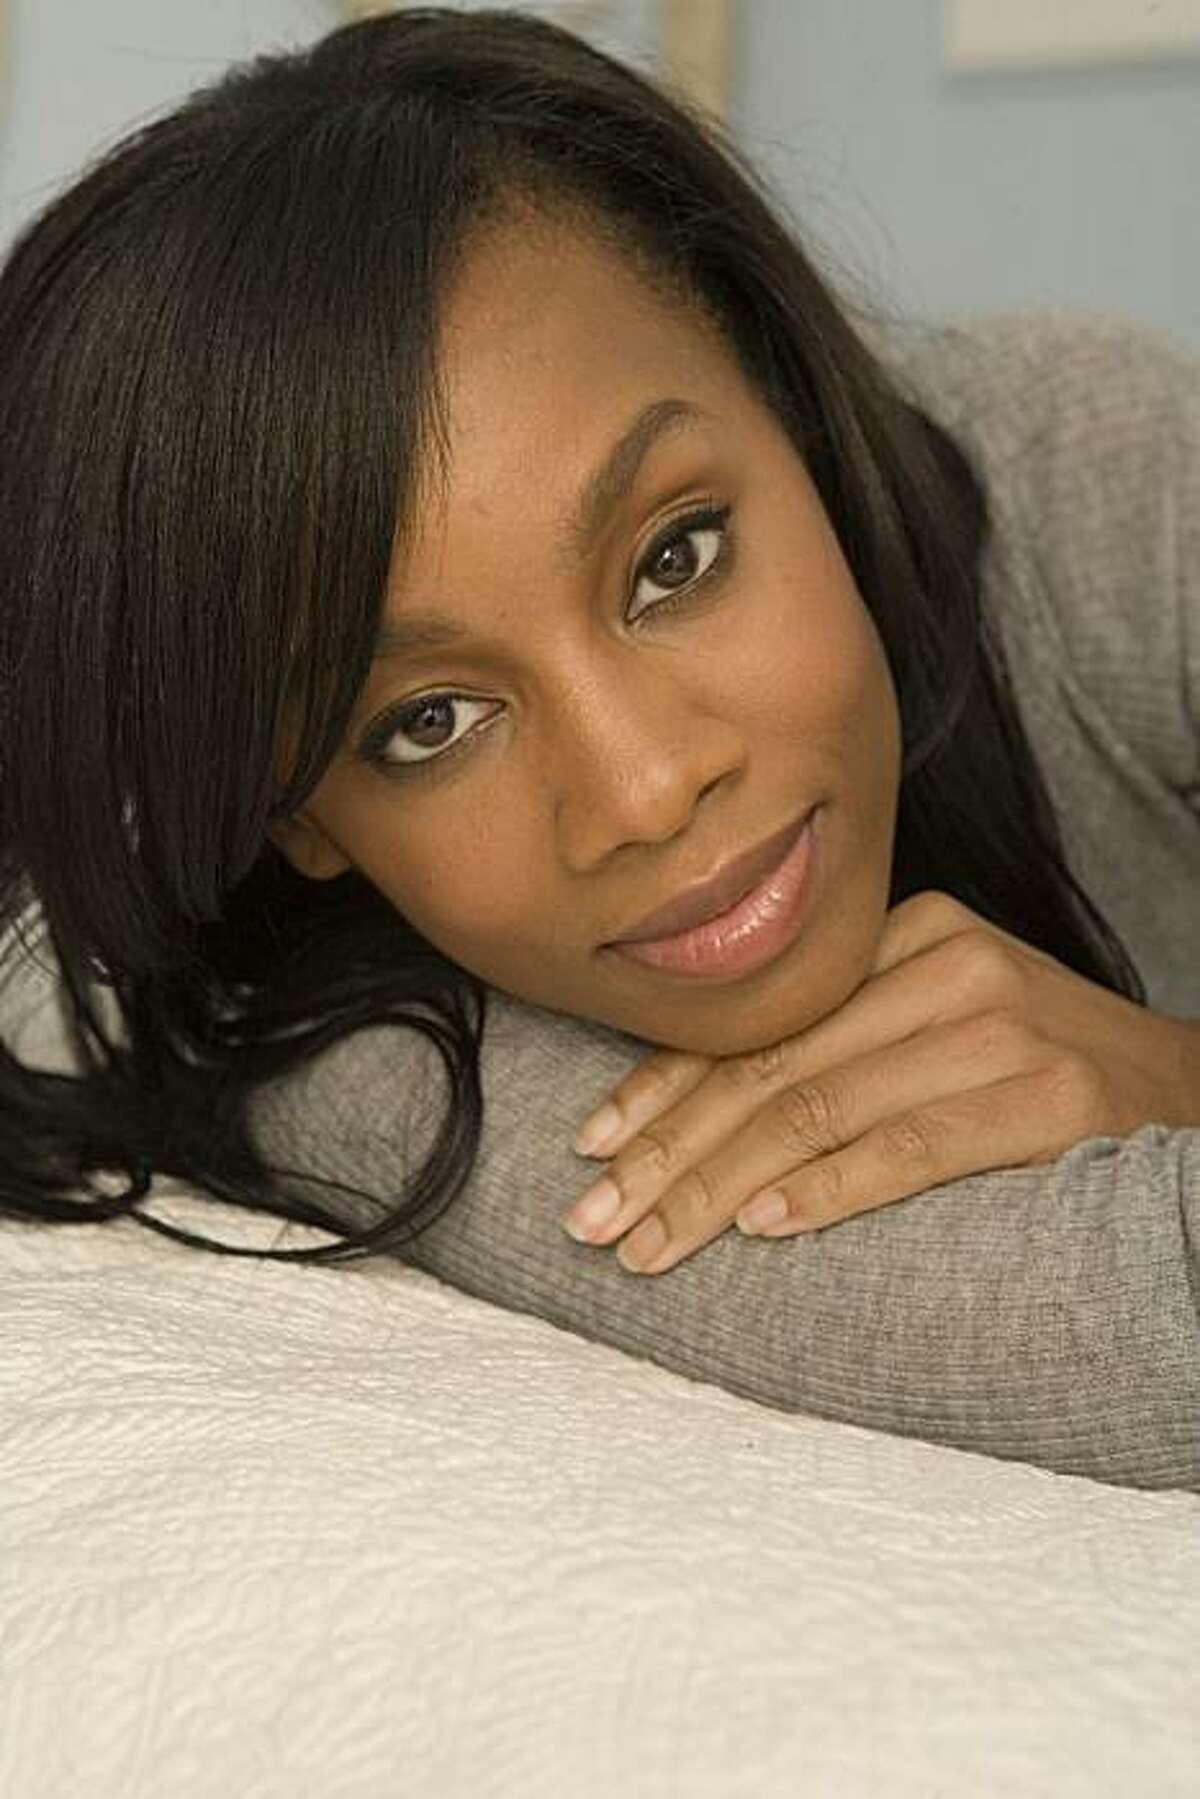 anika Noni Rose performs at 7 p.m. Feb. 20 at the Venetian Room of the Fairmont Hotel in San Francisco as part of Bay Area cabaret.